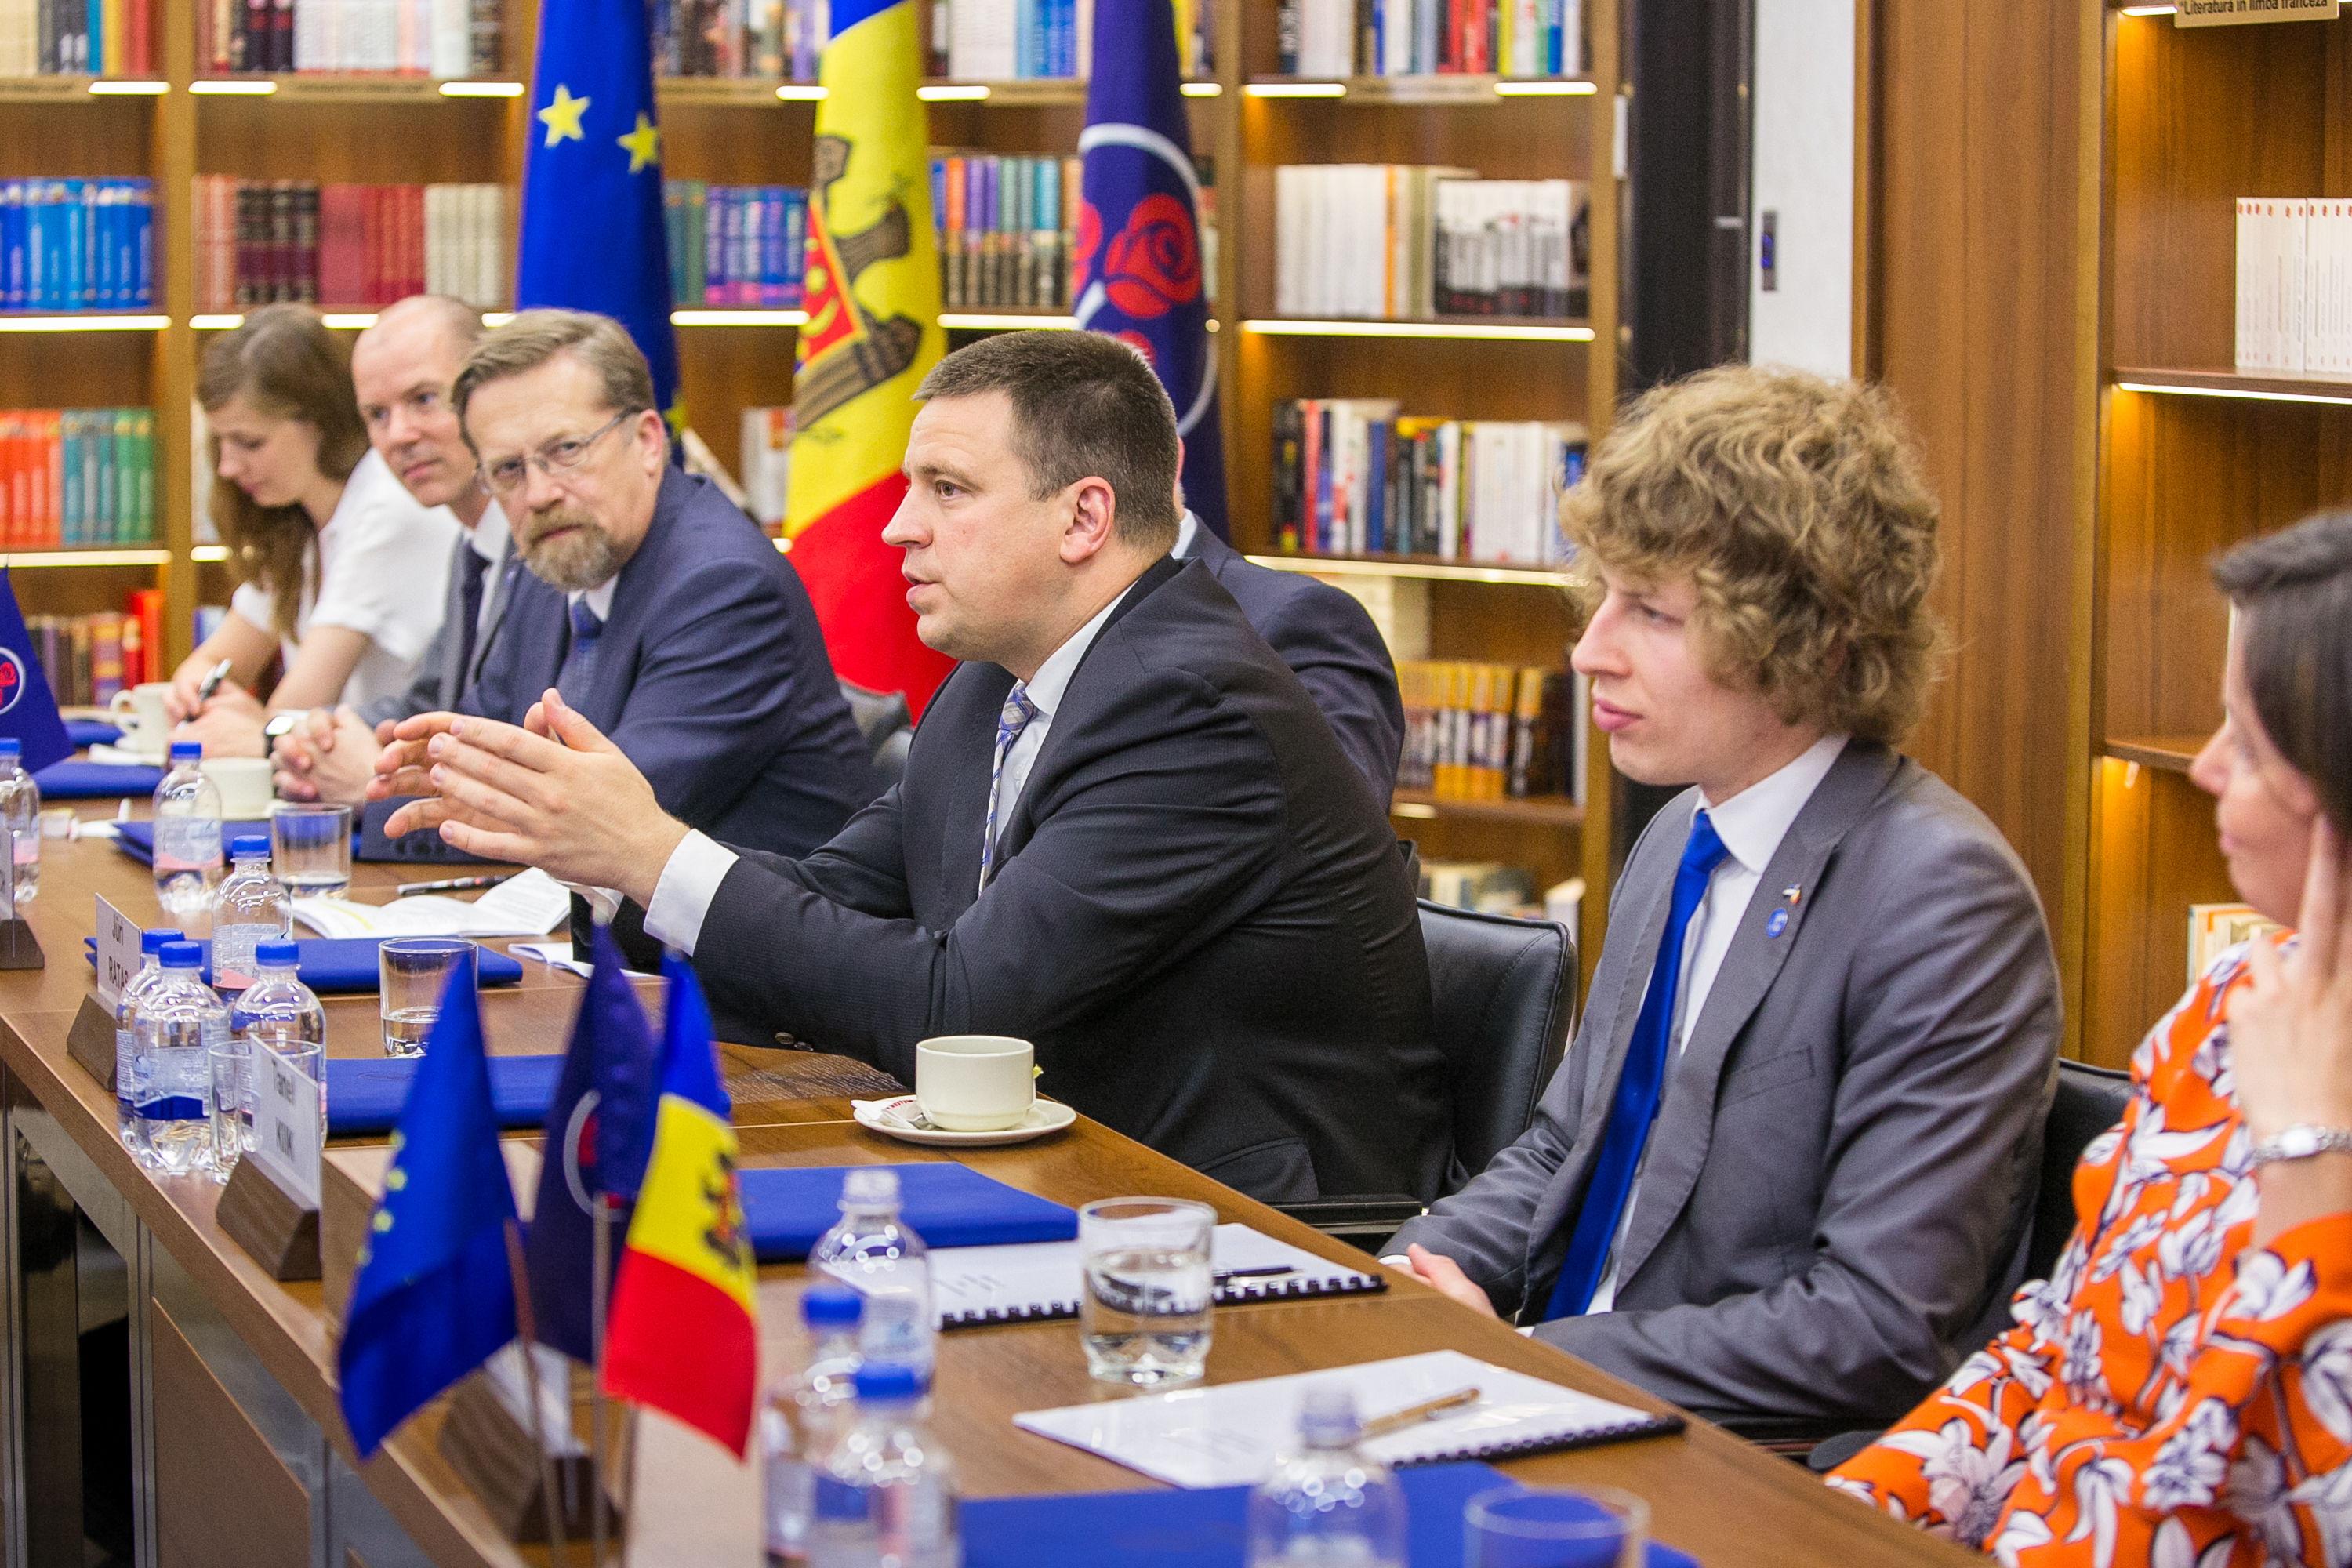 Chairman of the Democratic Party, Vlad Plahotniuc, to the Estonian Prime minister:  We Count on Estonian Support to Consolidate Moldova's European Project